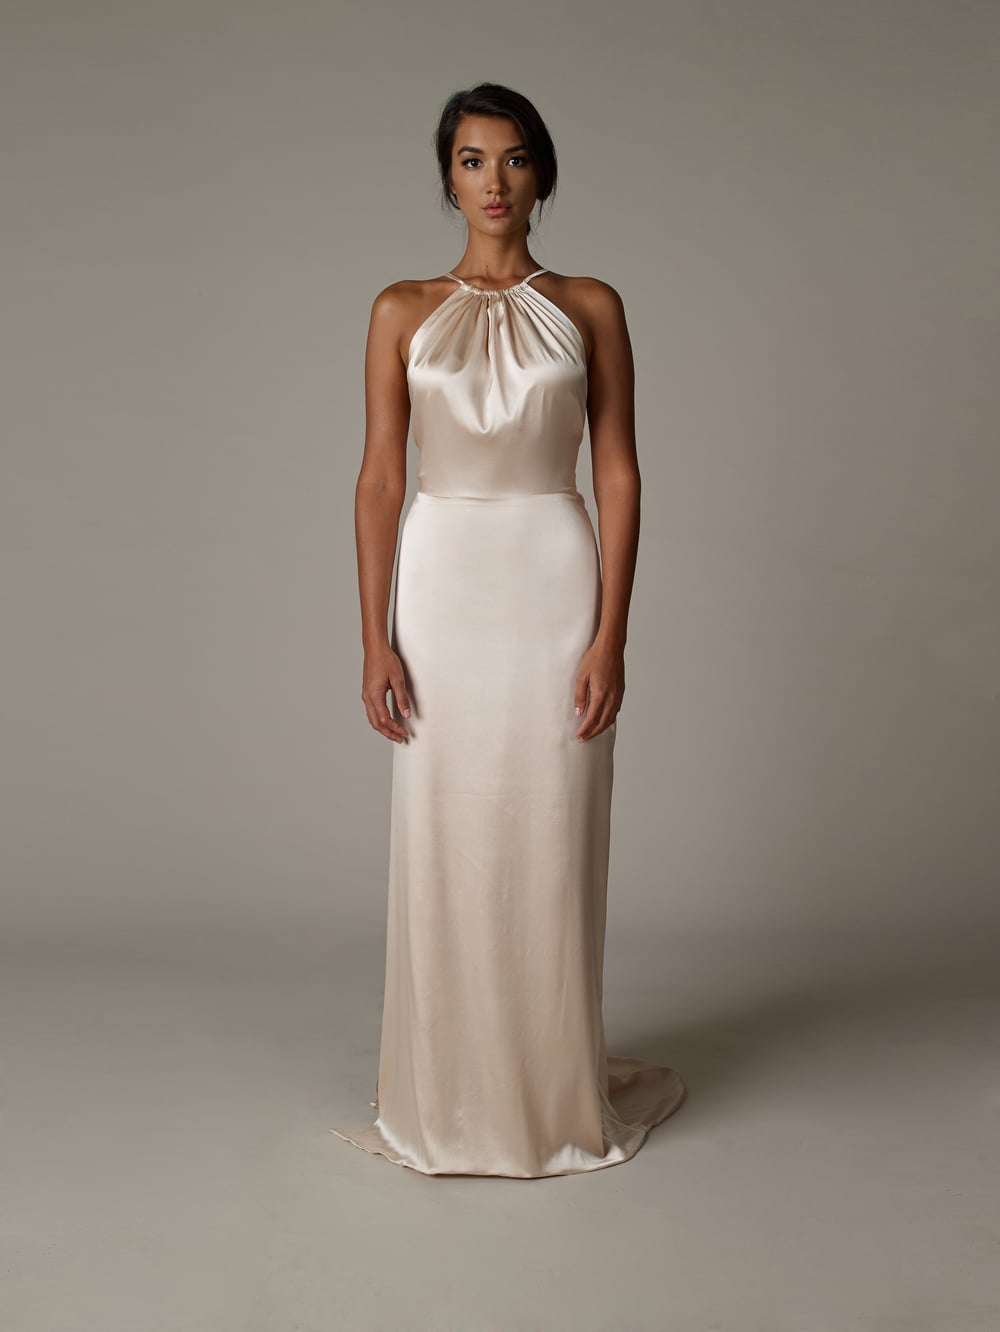 Joelle Perry: Ready To Wear Wedding Dresses | Hawaii Designer U2014 Hawaiian Wedding  Dresses | Couture U0026 RTW Gowns | Joelle Perry Fashion